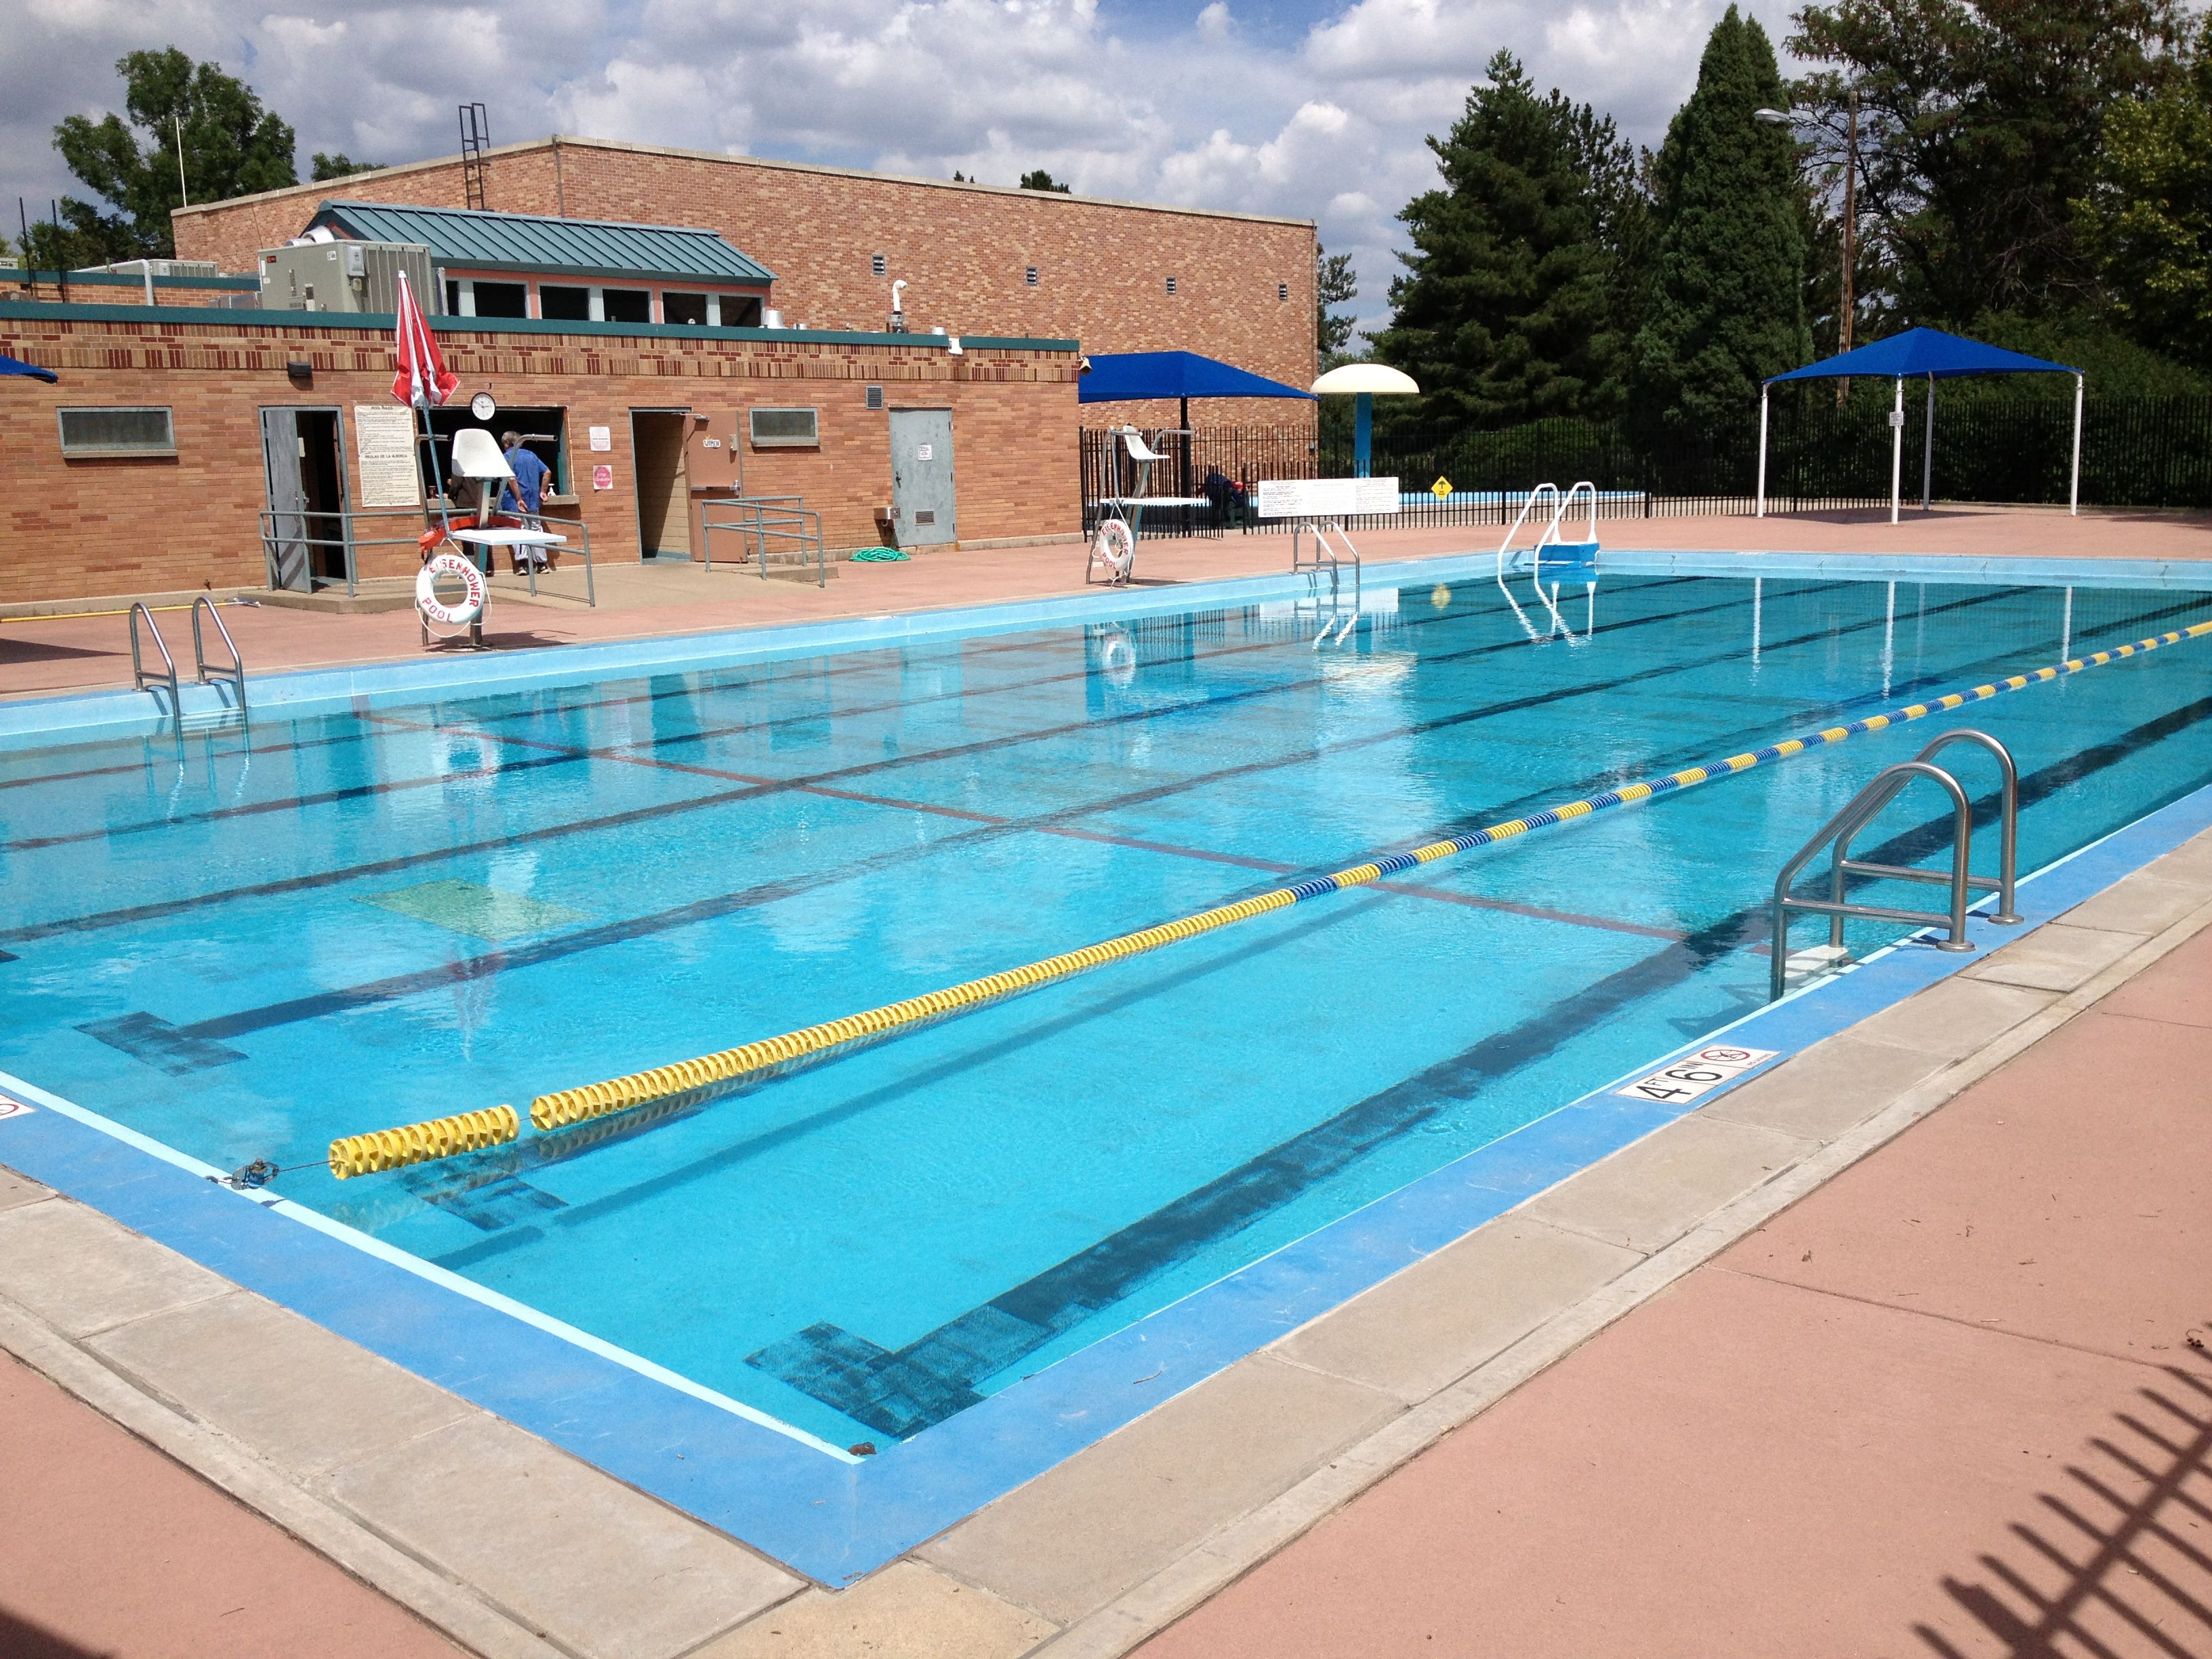 Swimming in Denver, CO: 16 Public Pools (List)